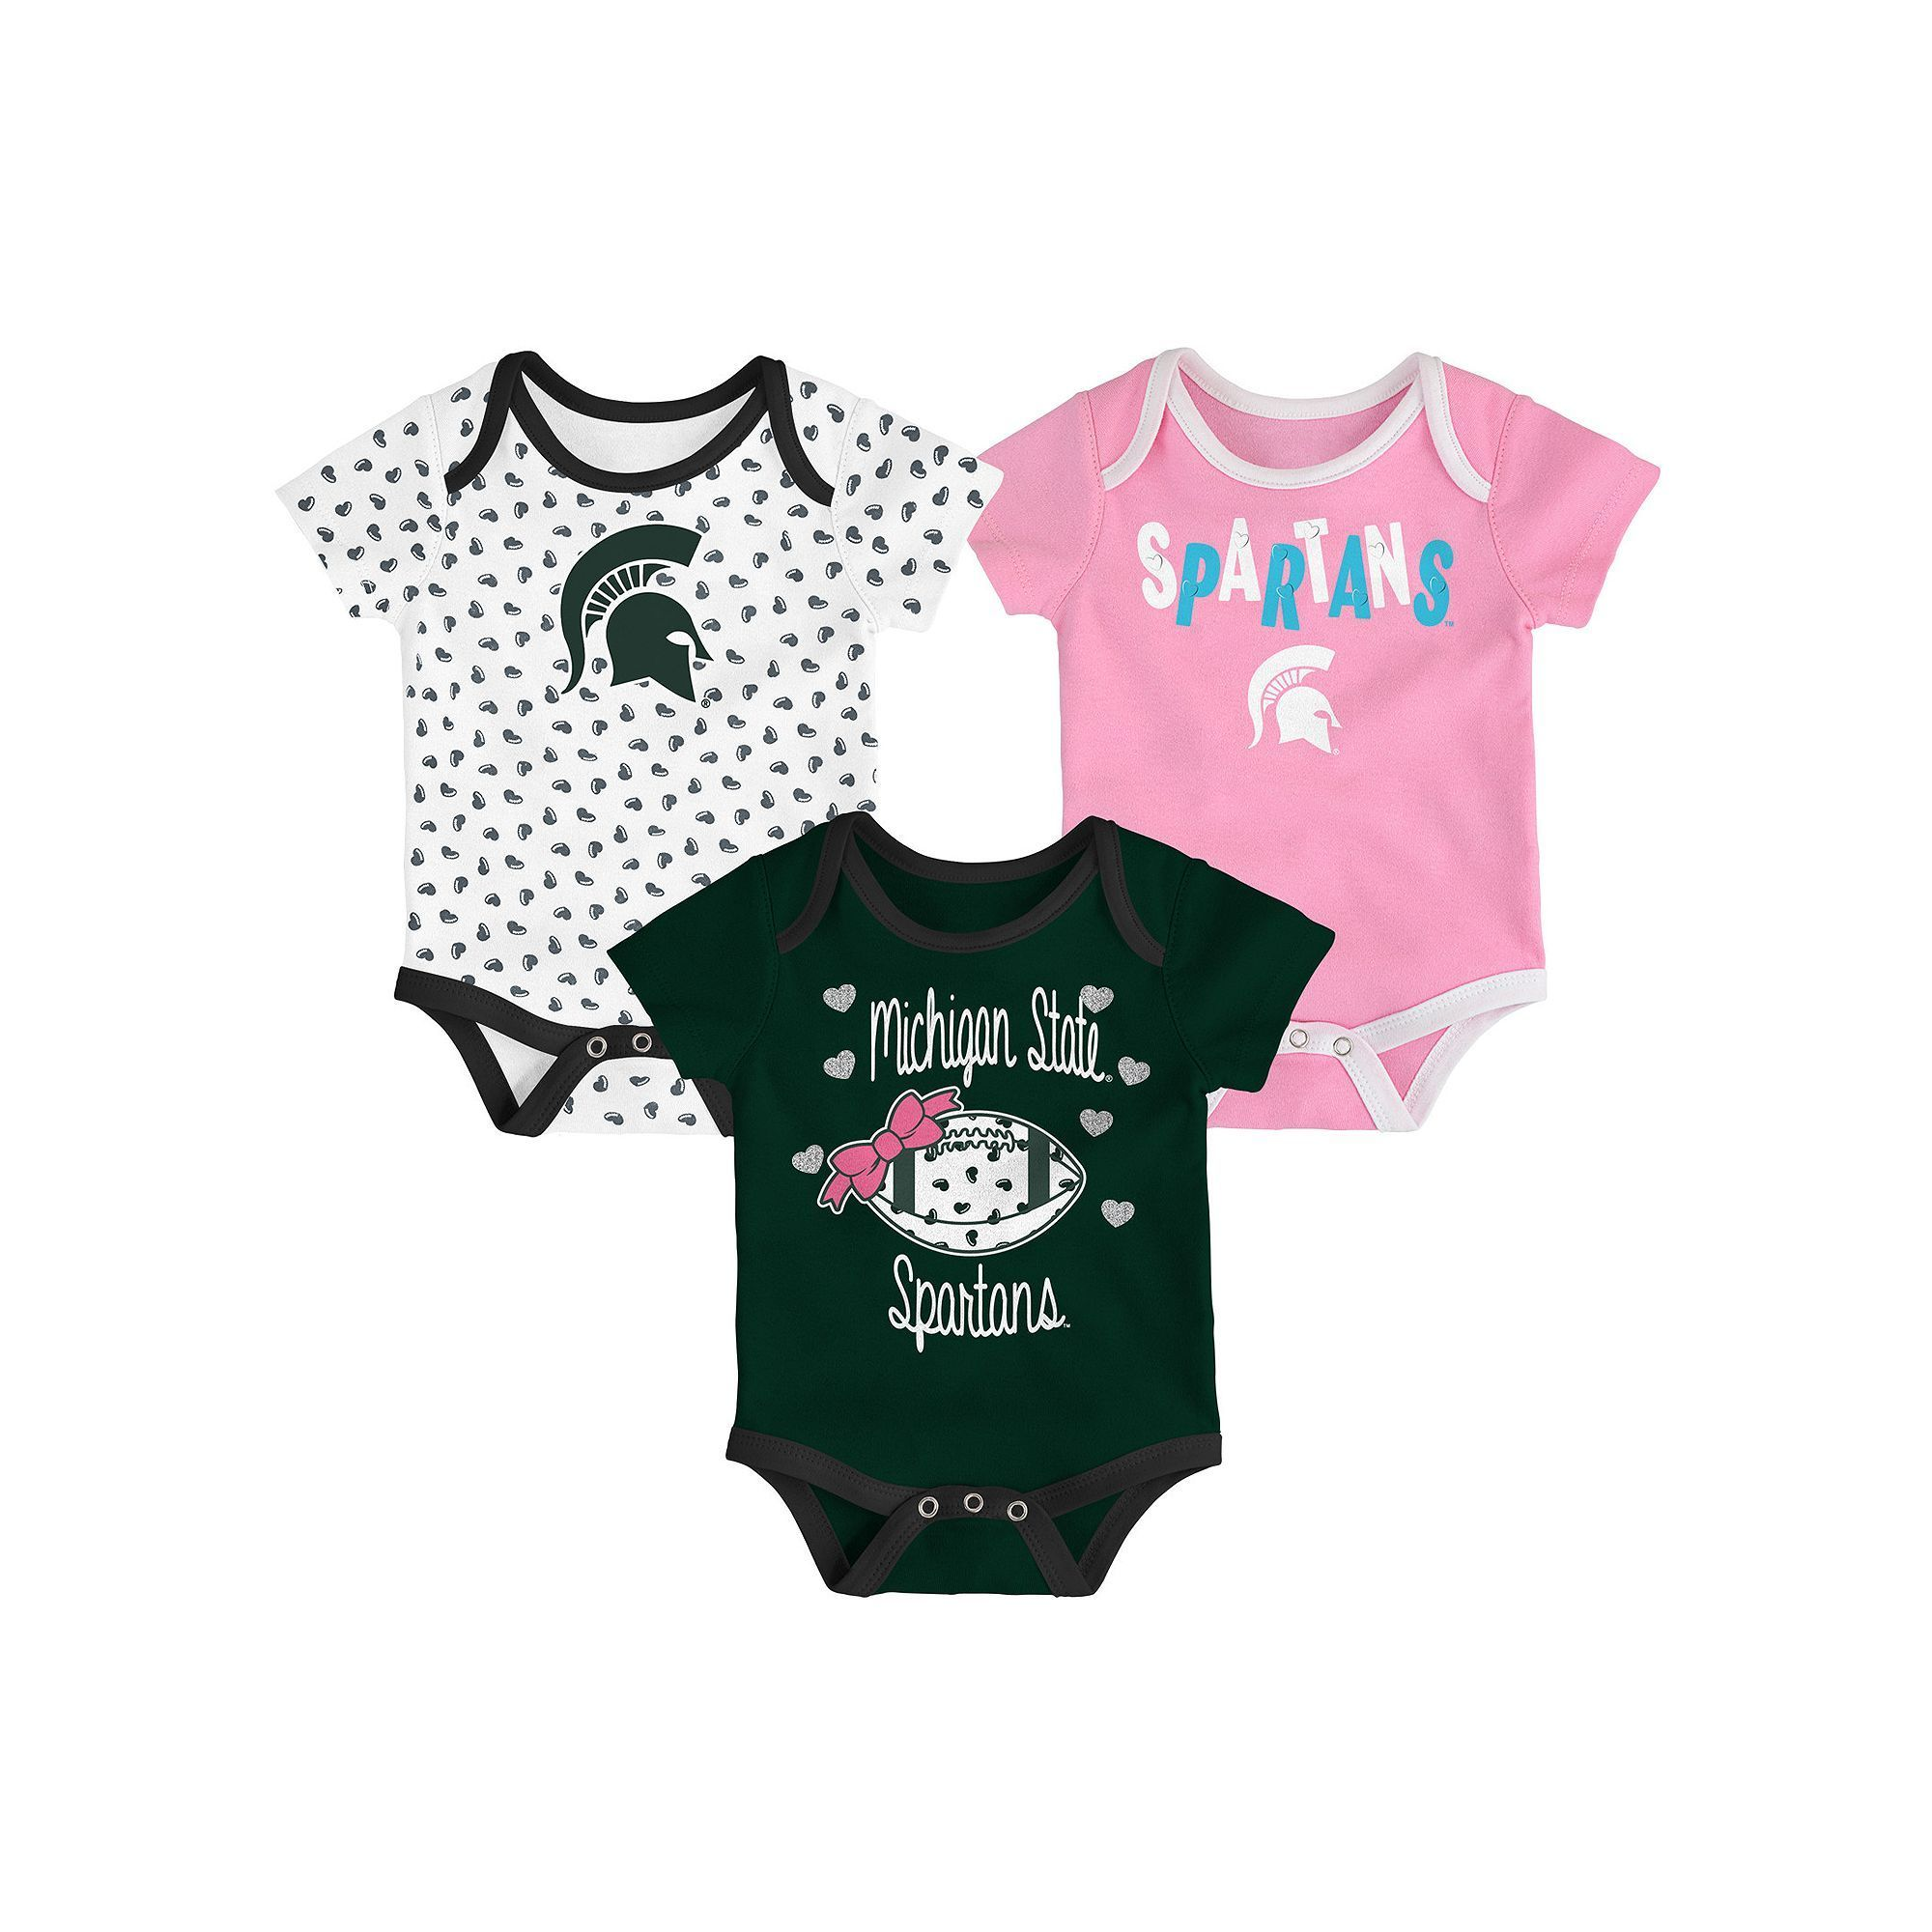 NCAA Baby Michigan State Spartans Heart Fan 3 Pack Bodysuit Set